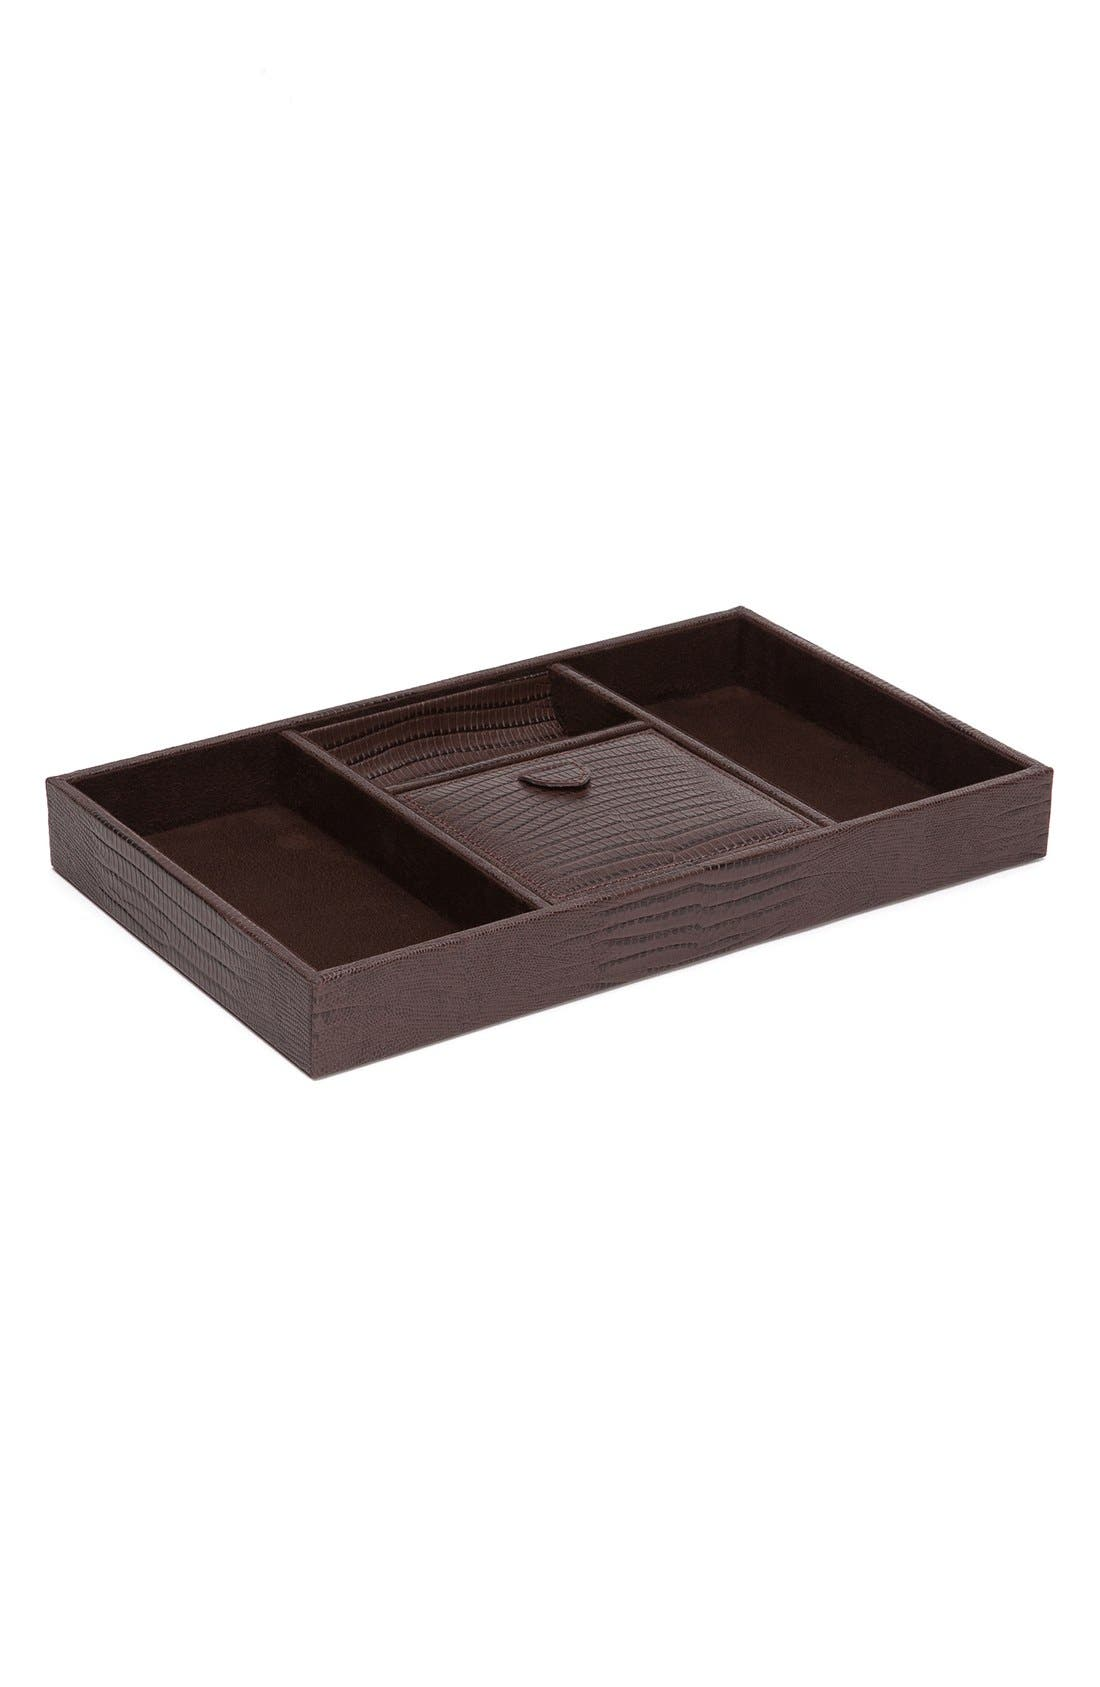 Blake Valet Tray,                         Main,                         color, Brown Lizard